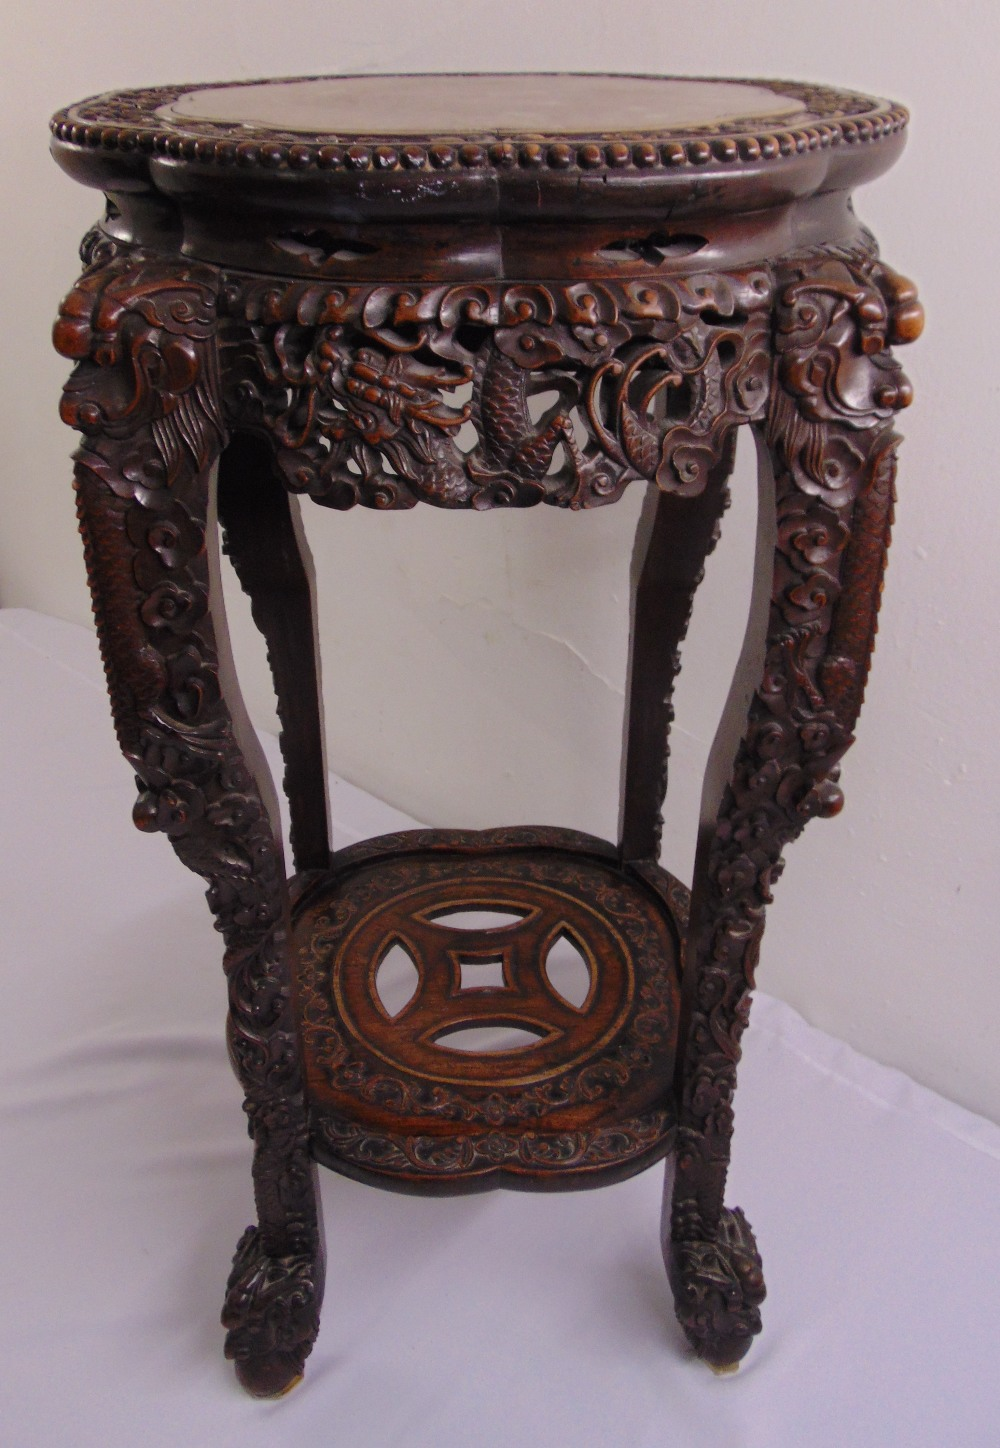 Lot 10 - A Chinese 19th century hardwood shaped circular side table with inset marble top the sides and